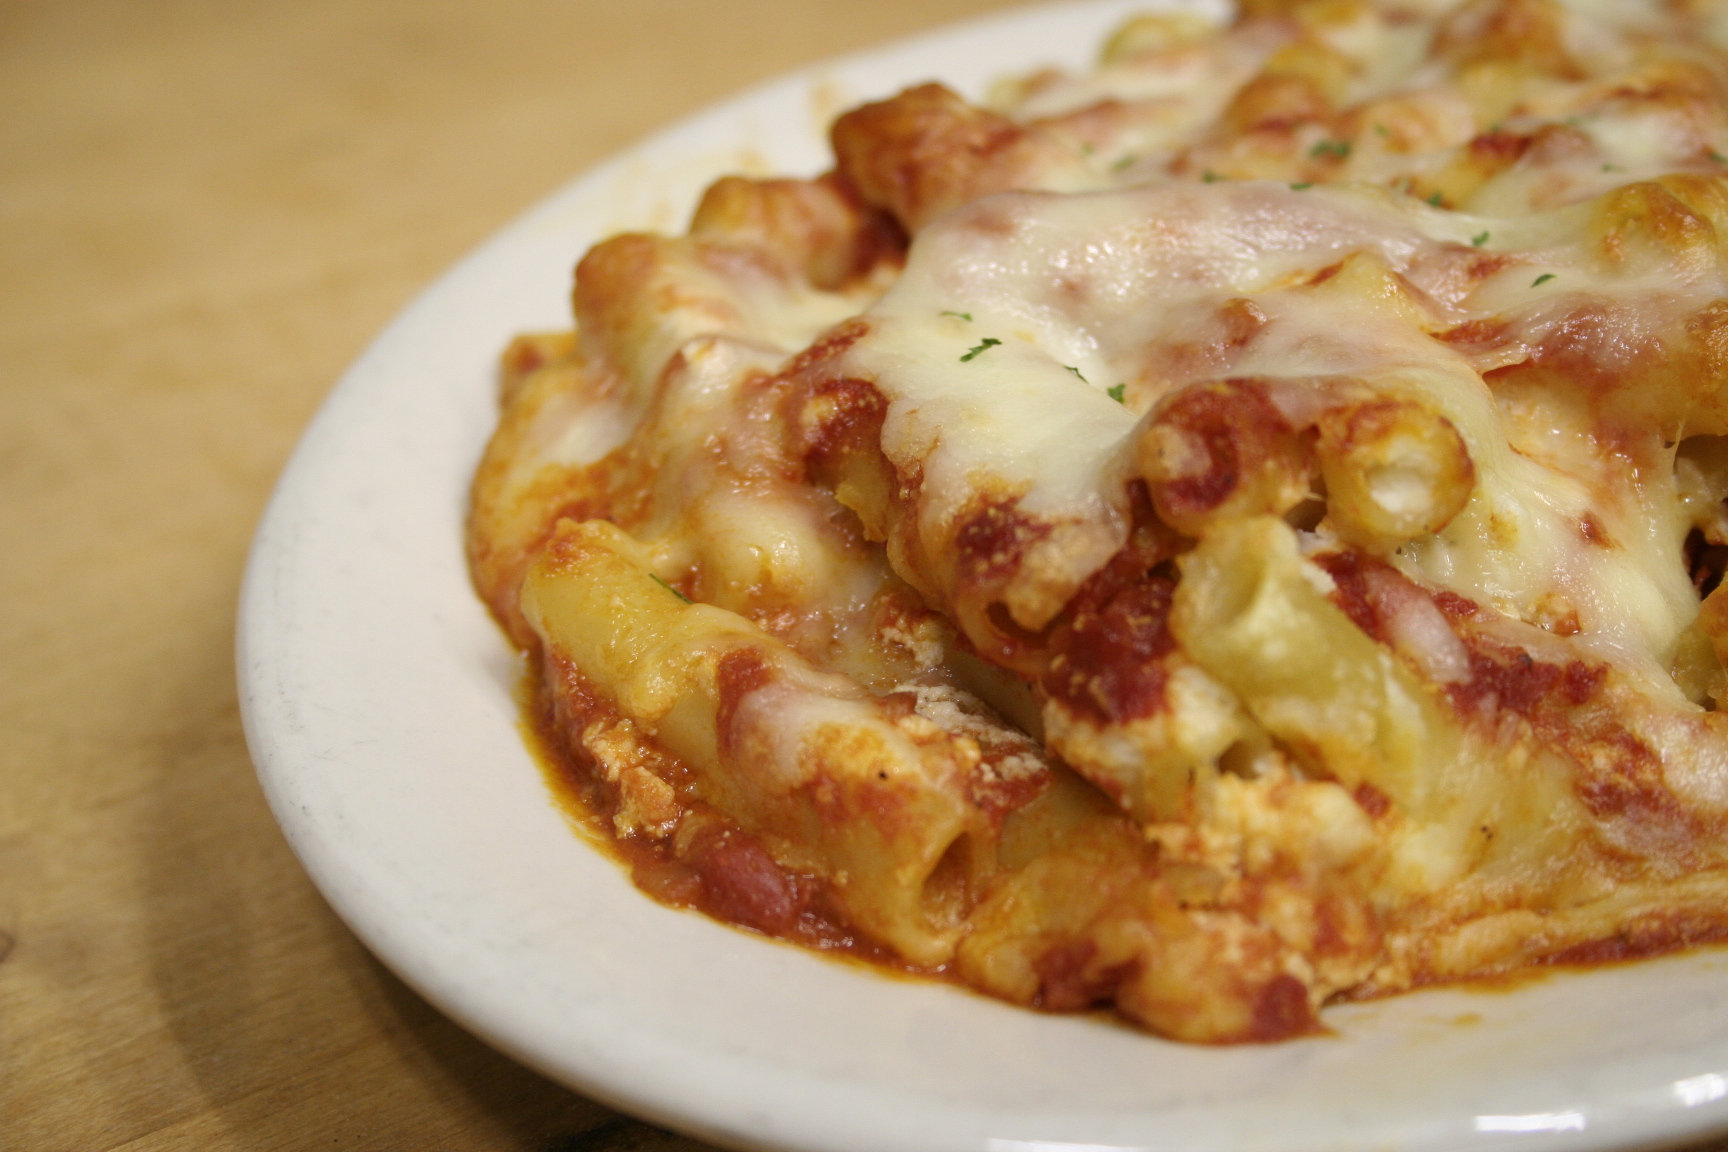 Baked ziti topped with red sauce and melted mozzarella